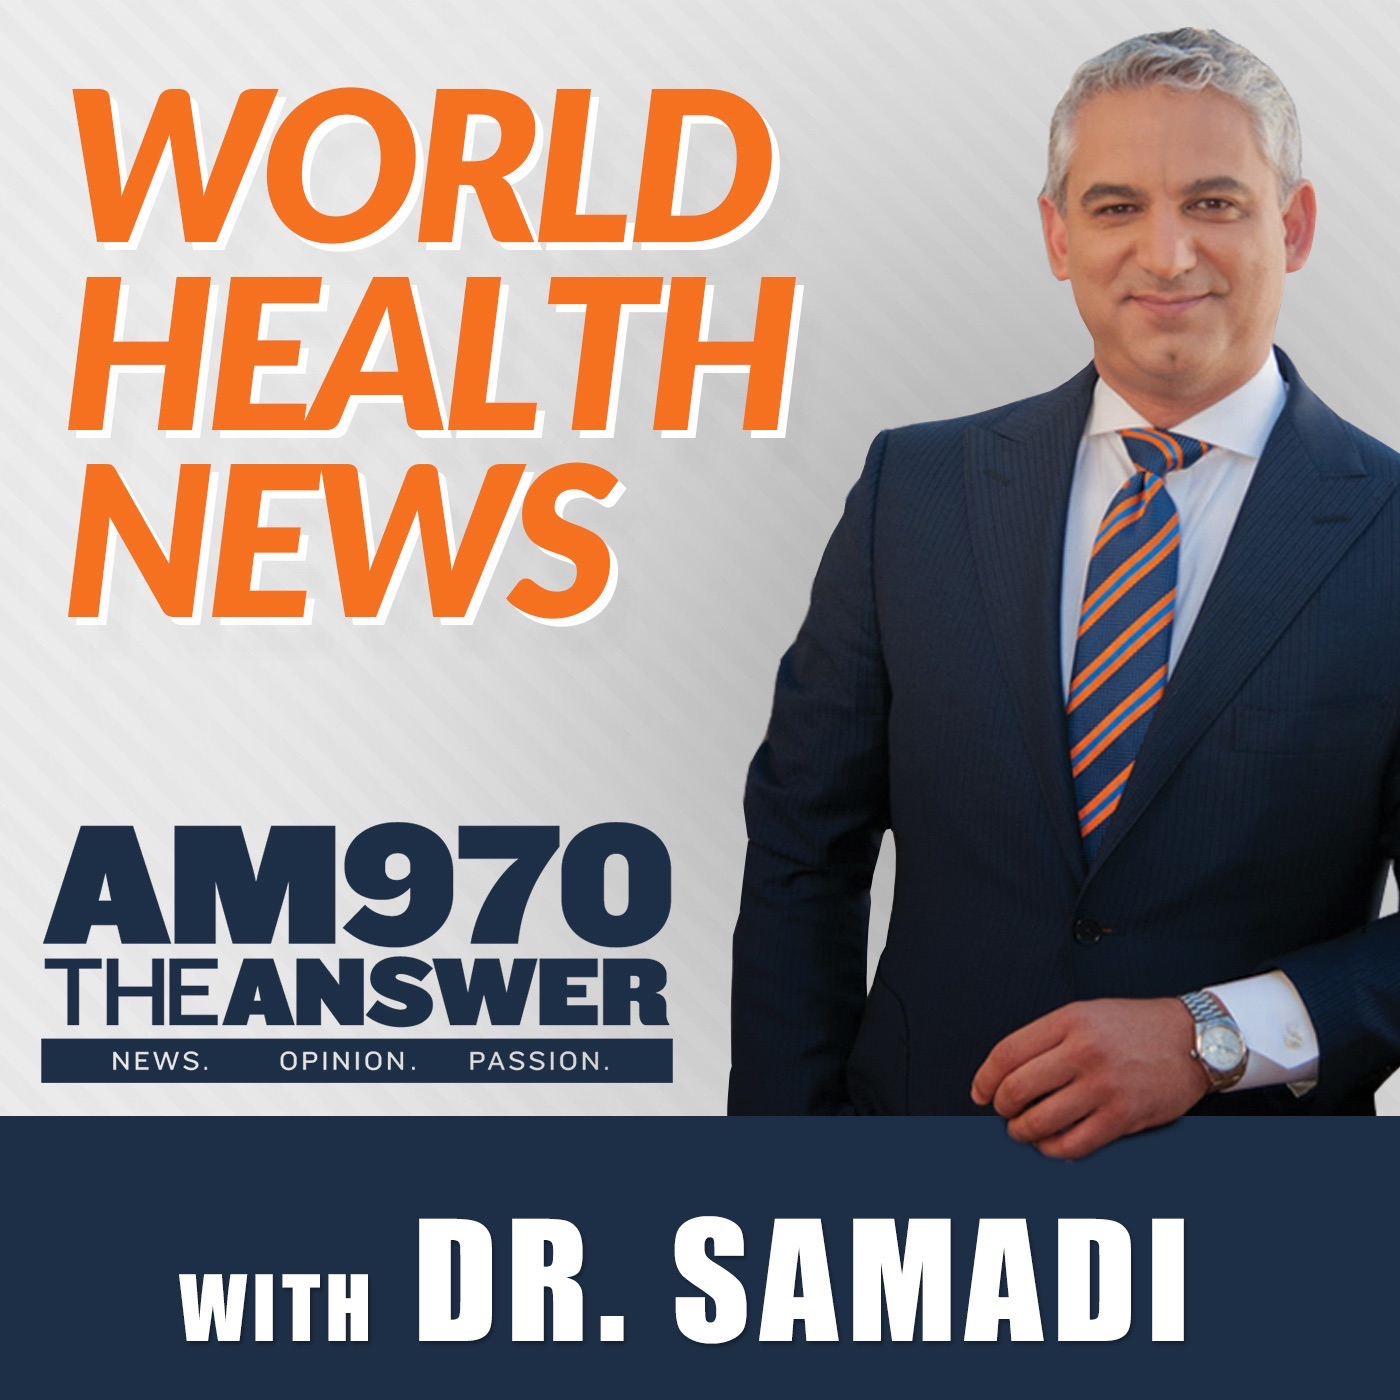 World Health News